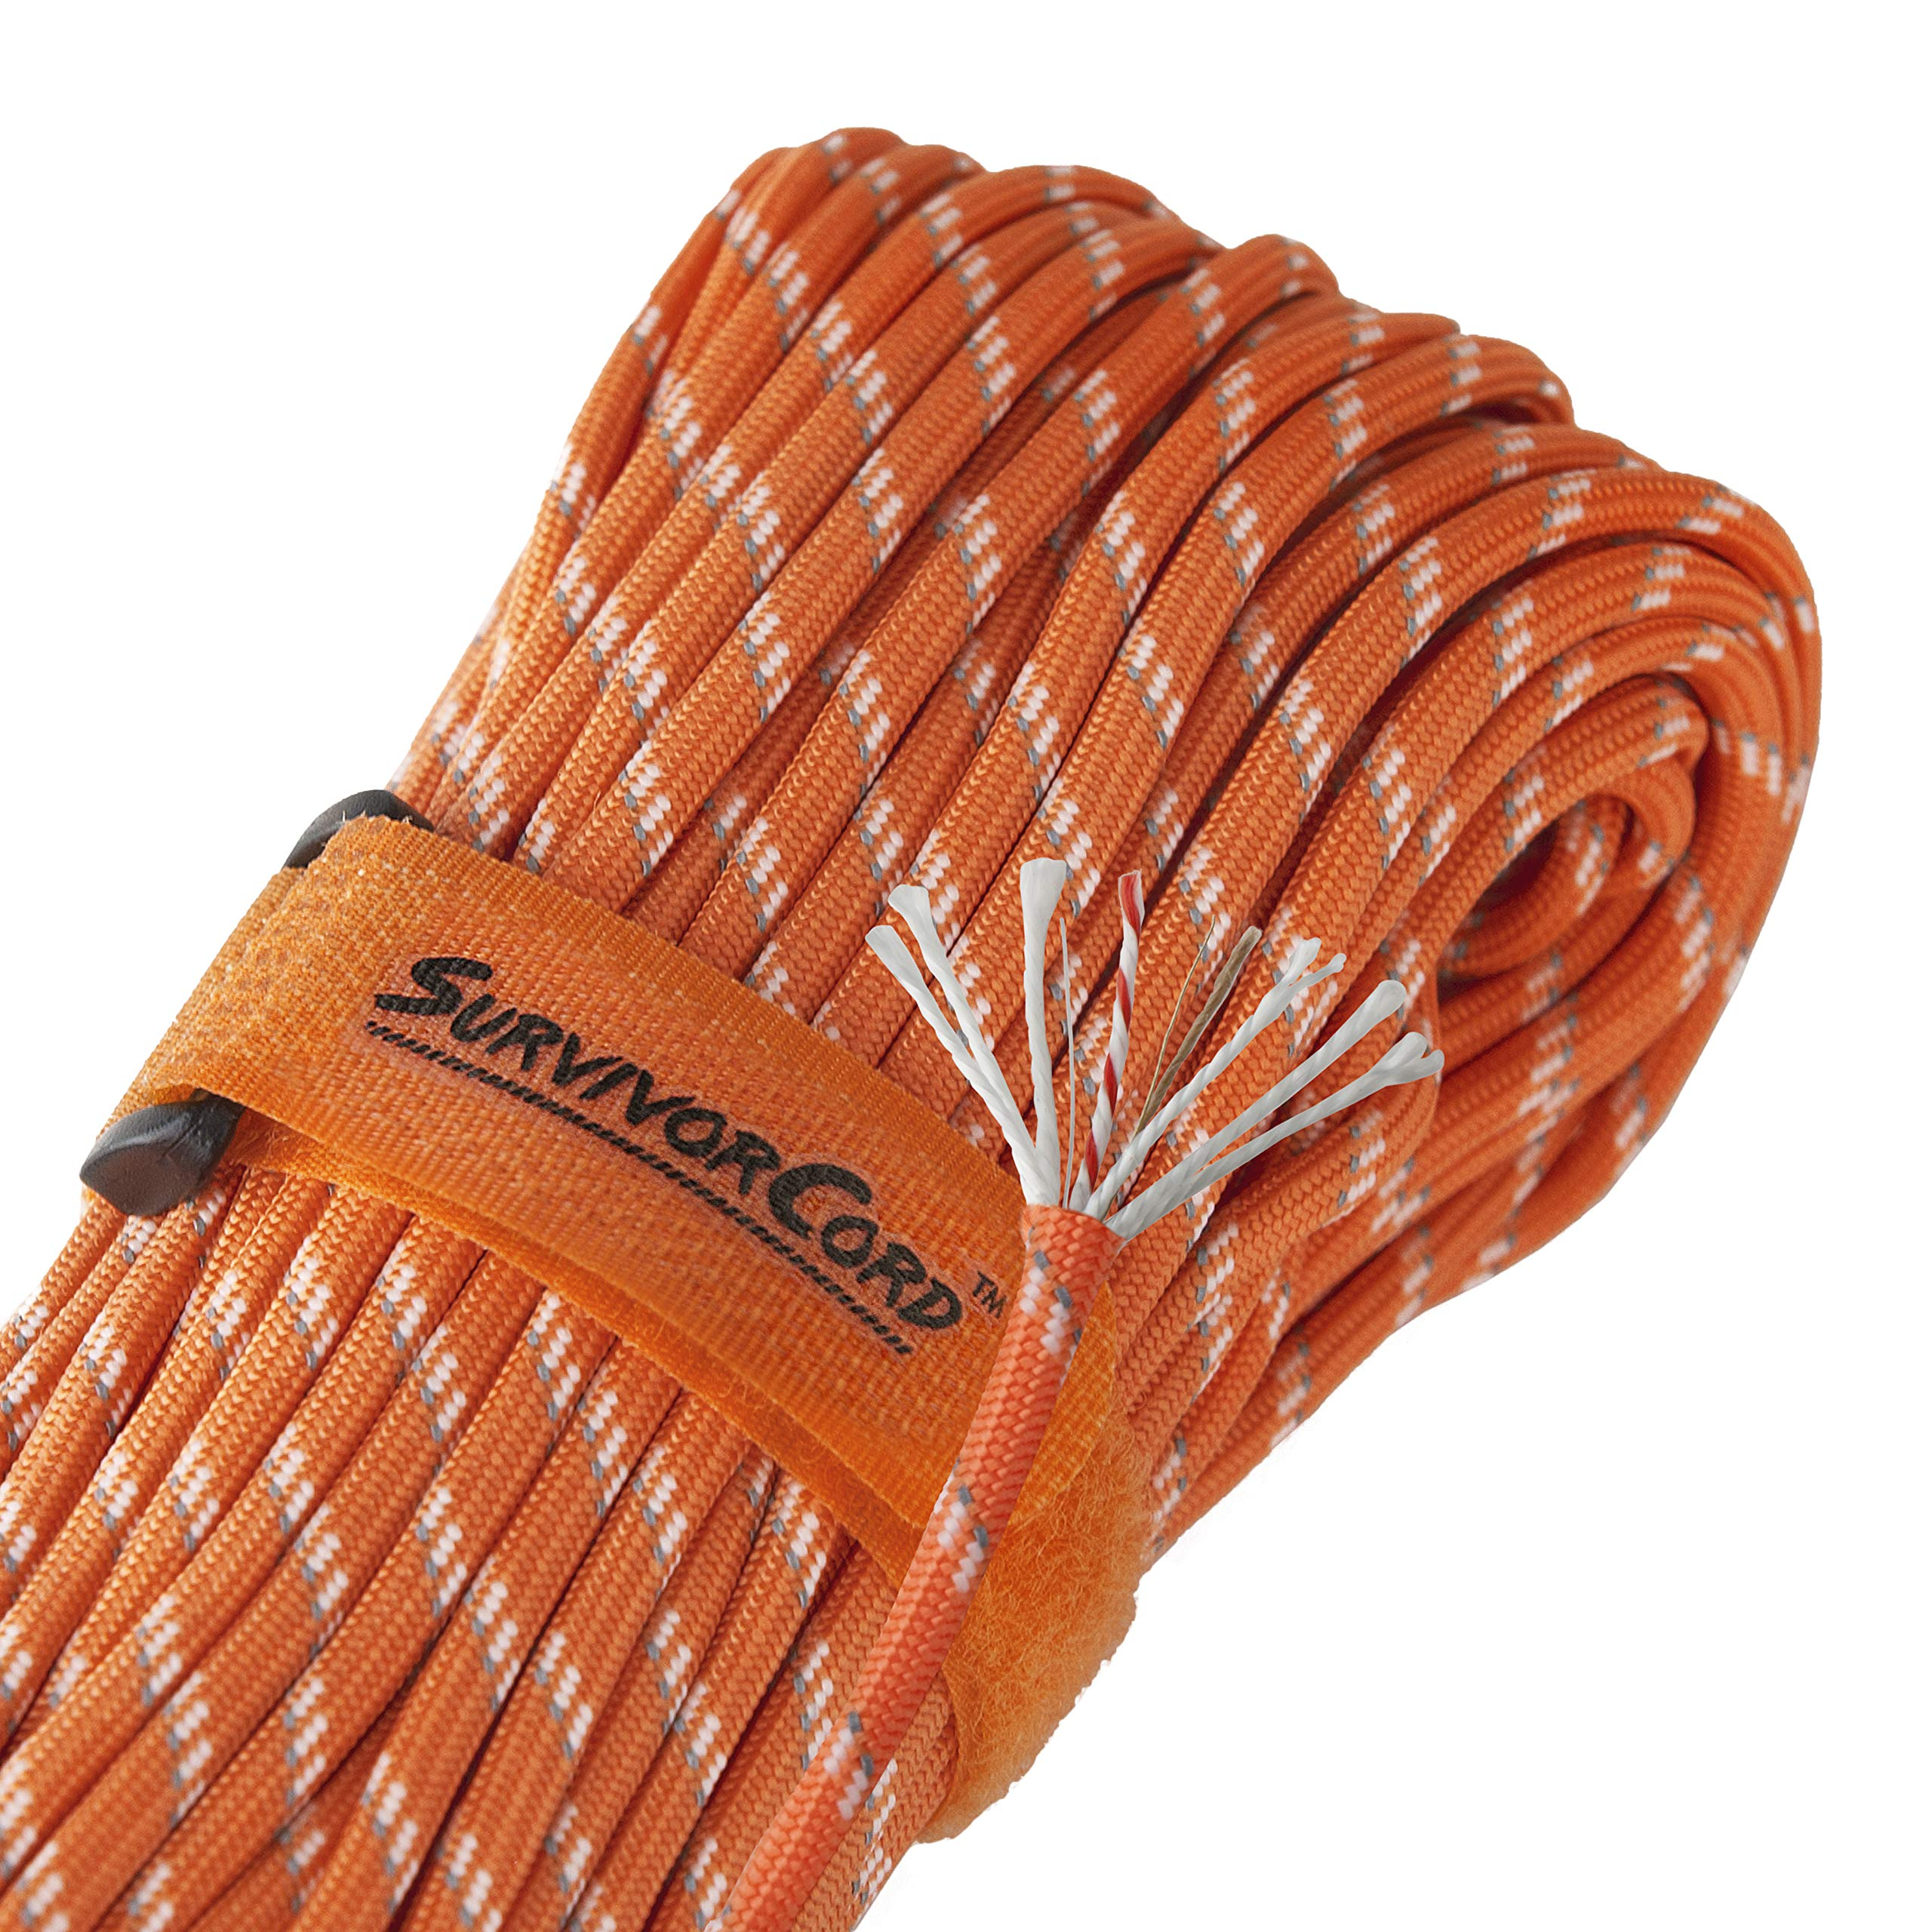 Titan SurvivorCord | Reflective Orange | 103 Feet | Patented Military Type III 550 Paracord/Parachute Cord (3/16'' Diameter) with Integrated Fishing Line, Fire-Starter, and Utility Wire.